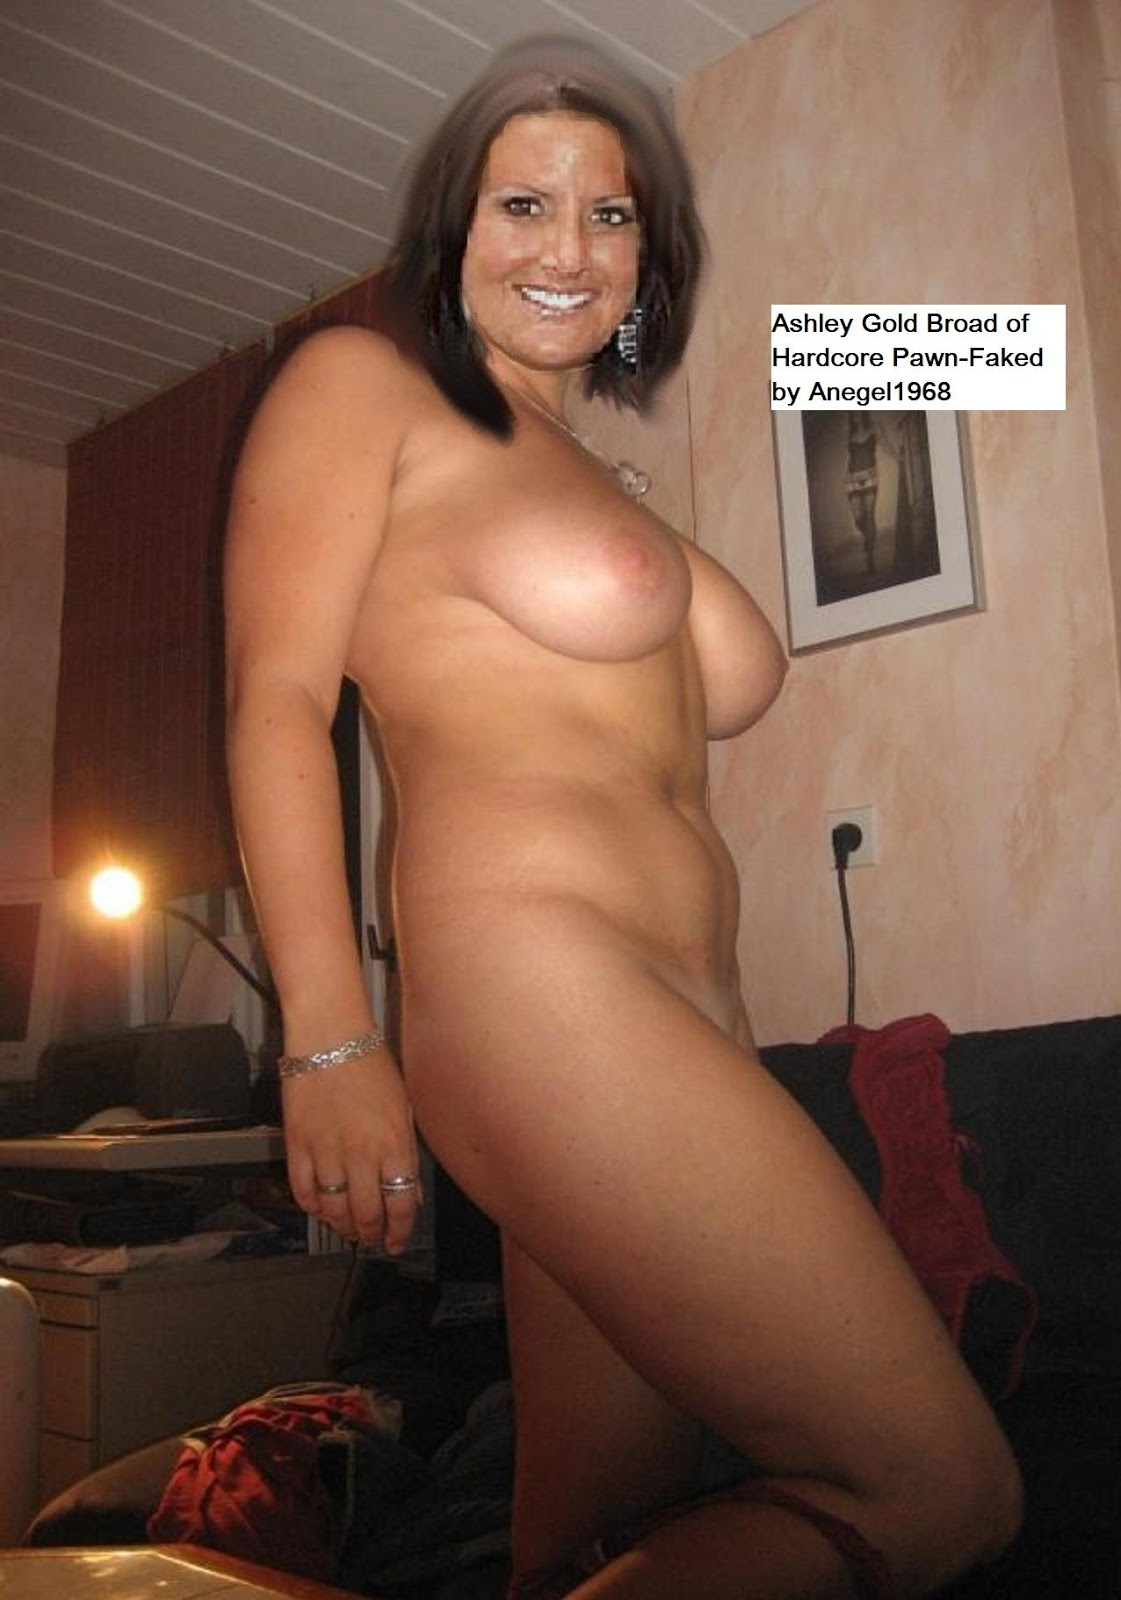 phrase, matchless))) The asian woman big tits was mistake